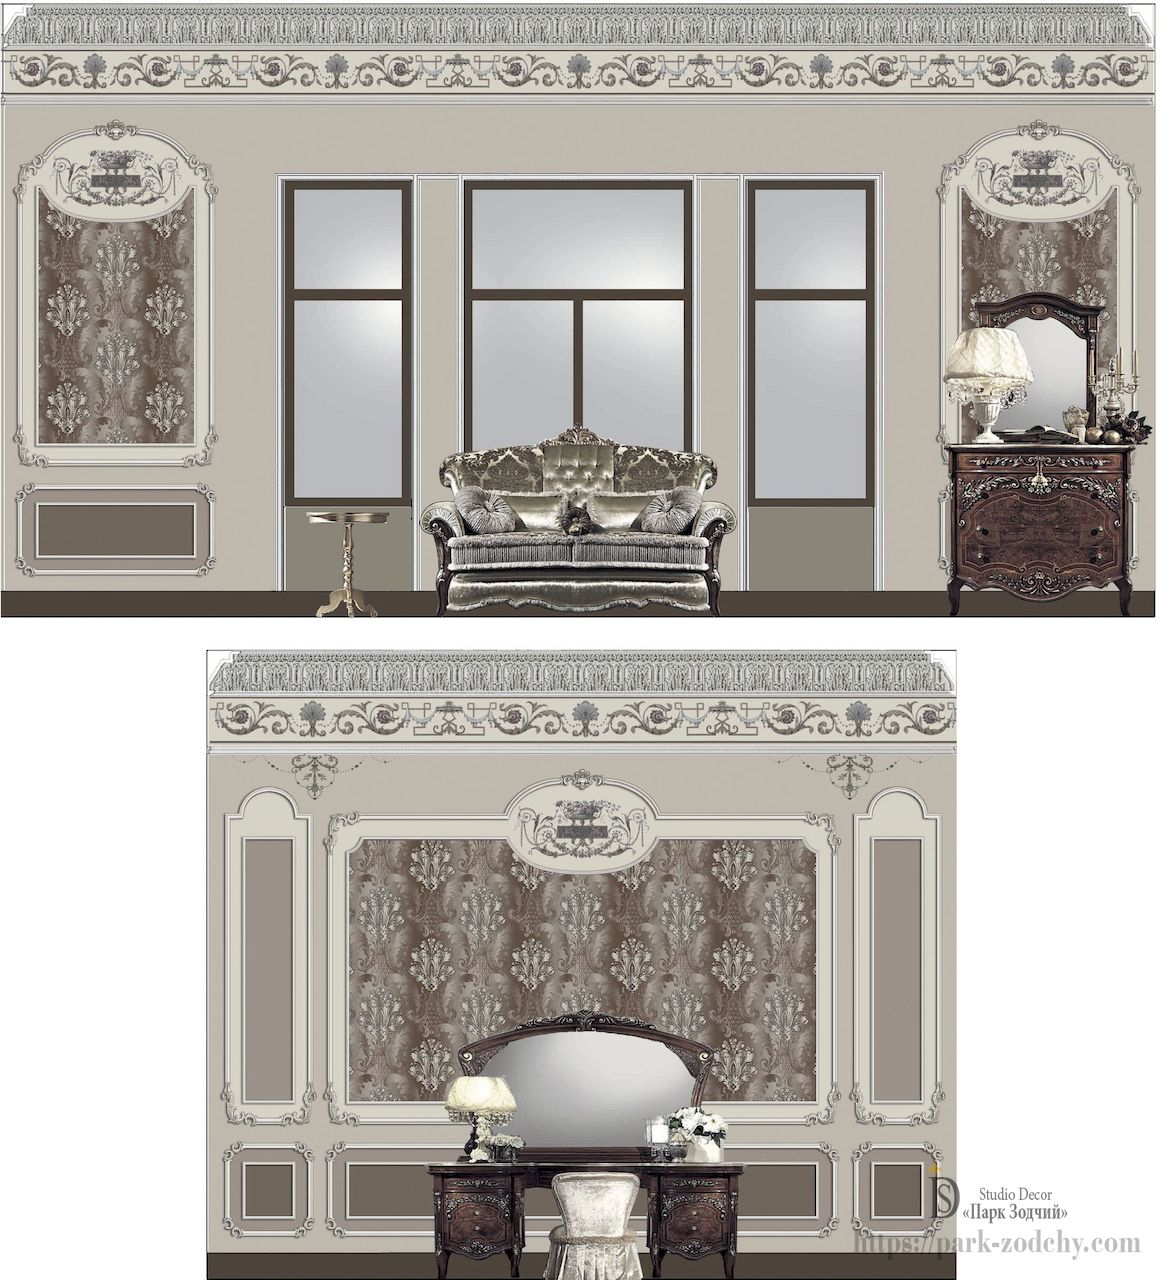 Unfold on the walls of a bedroom in the Baroque style with painting